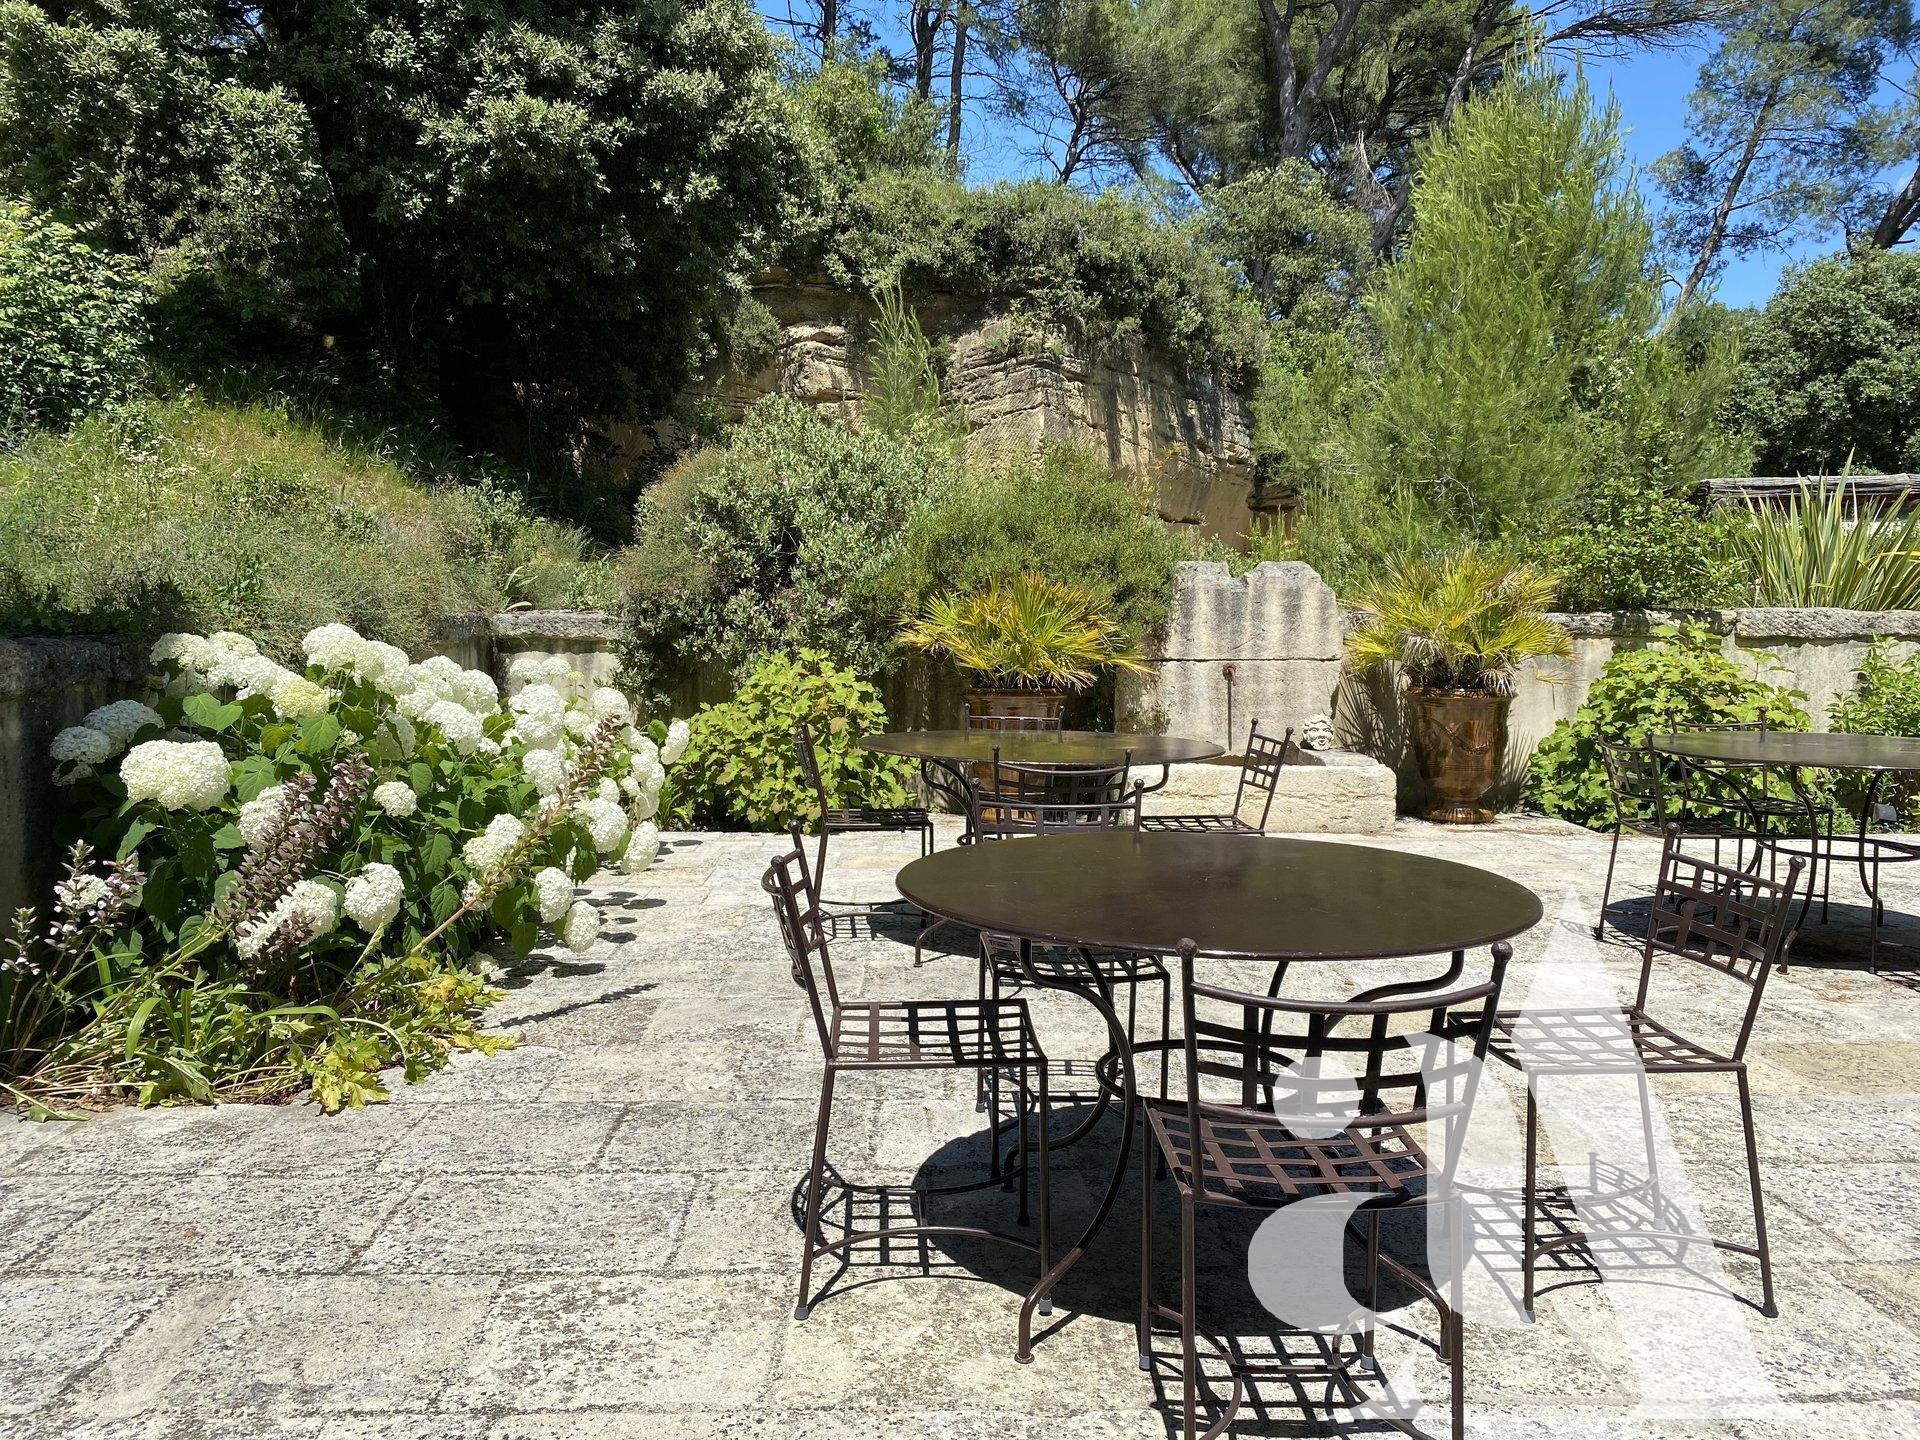 MAS DU FIGUIER - ST ETIENNE DU GRES- ALPILLES- 6 Bedrooms - 11 people